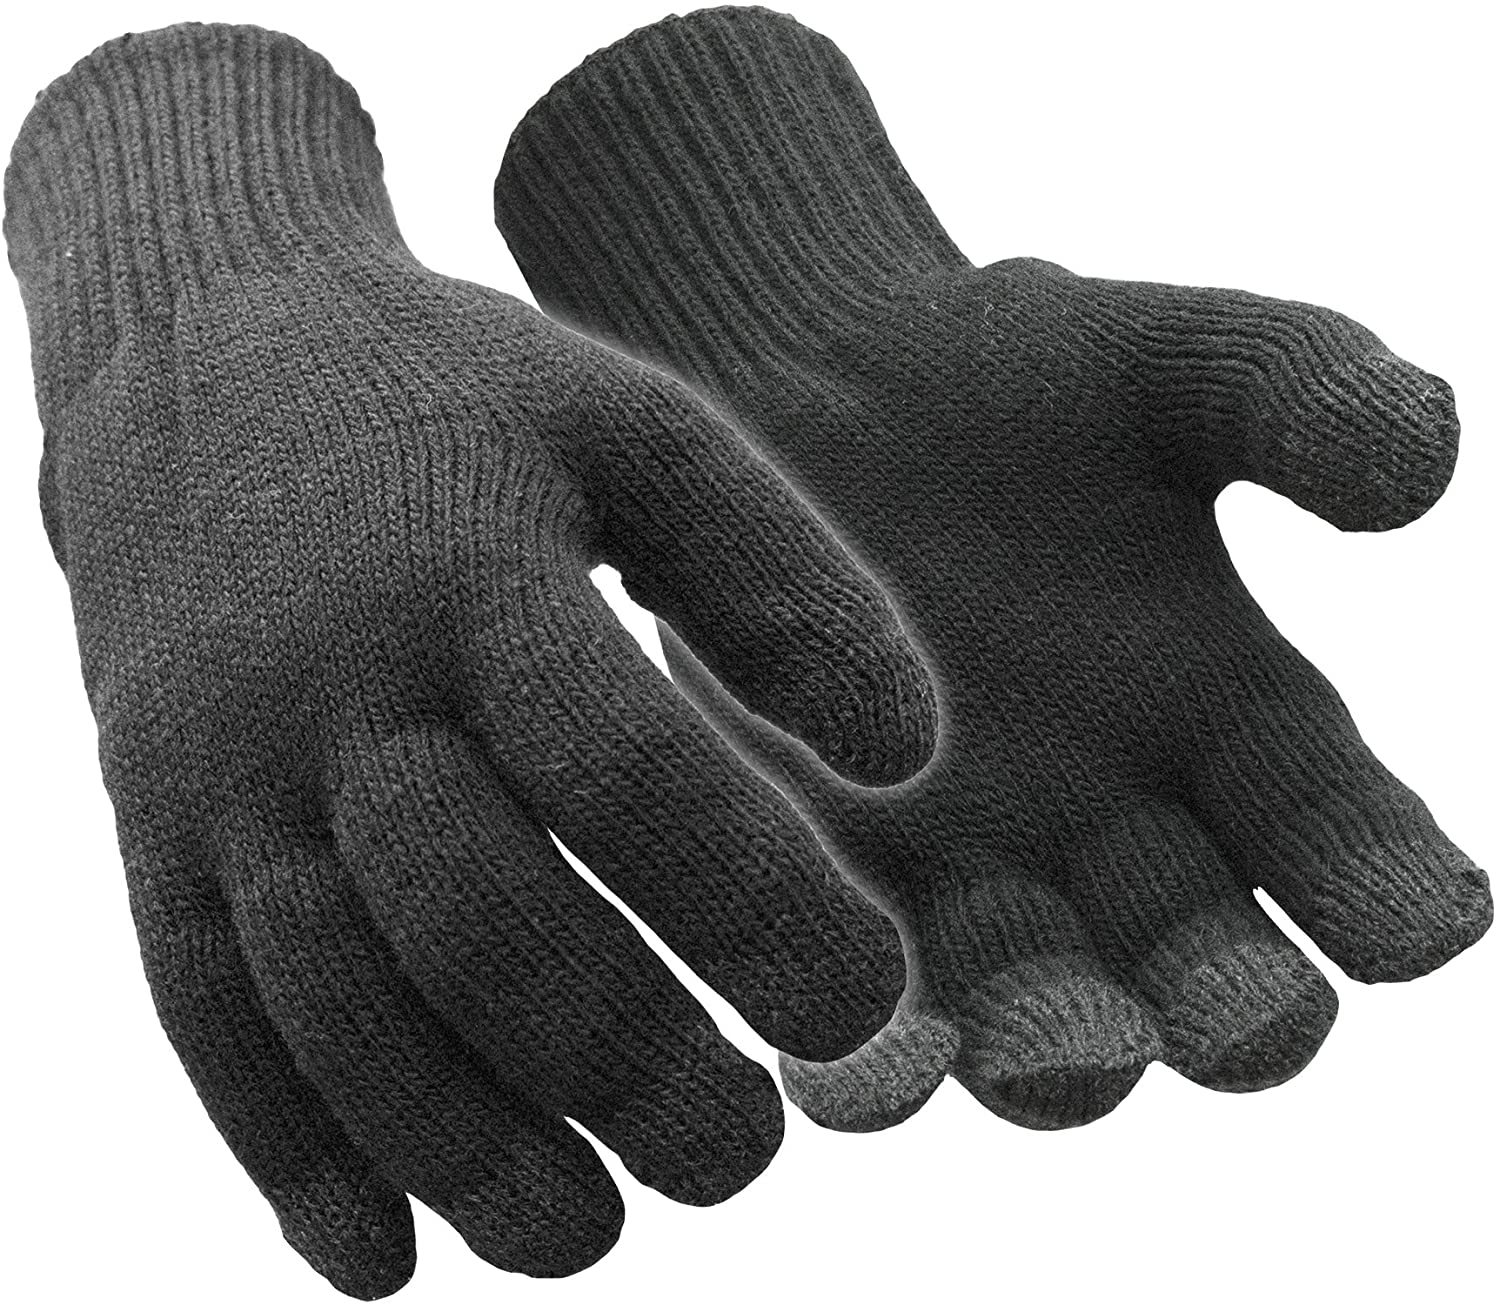 RefrigiWear Warm Dual Layer Thermal Lined Acrylic Stretch Knit Touchscreen Compatible Gloves